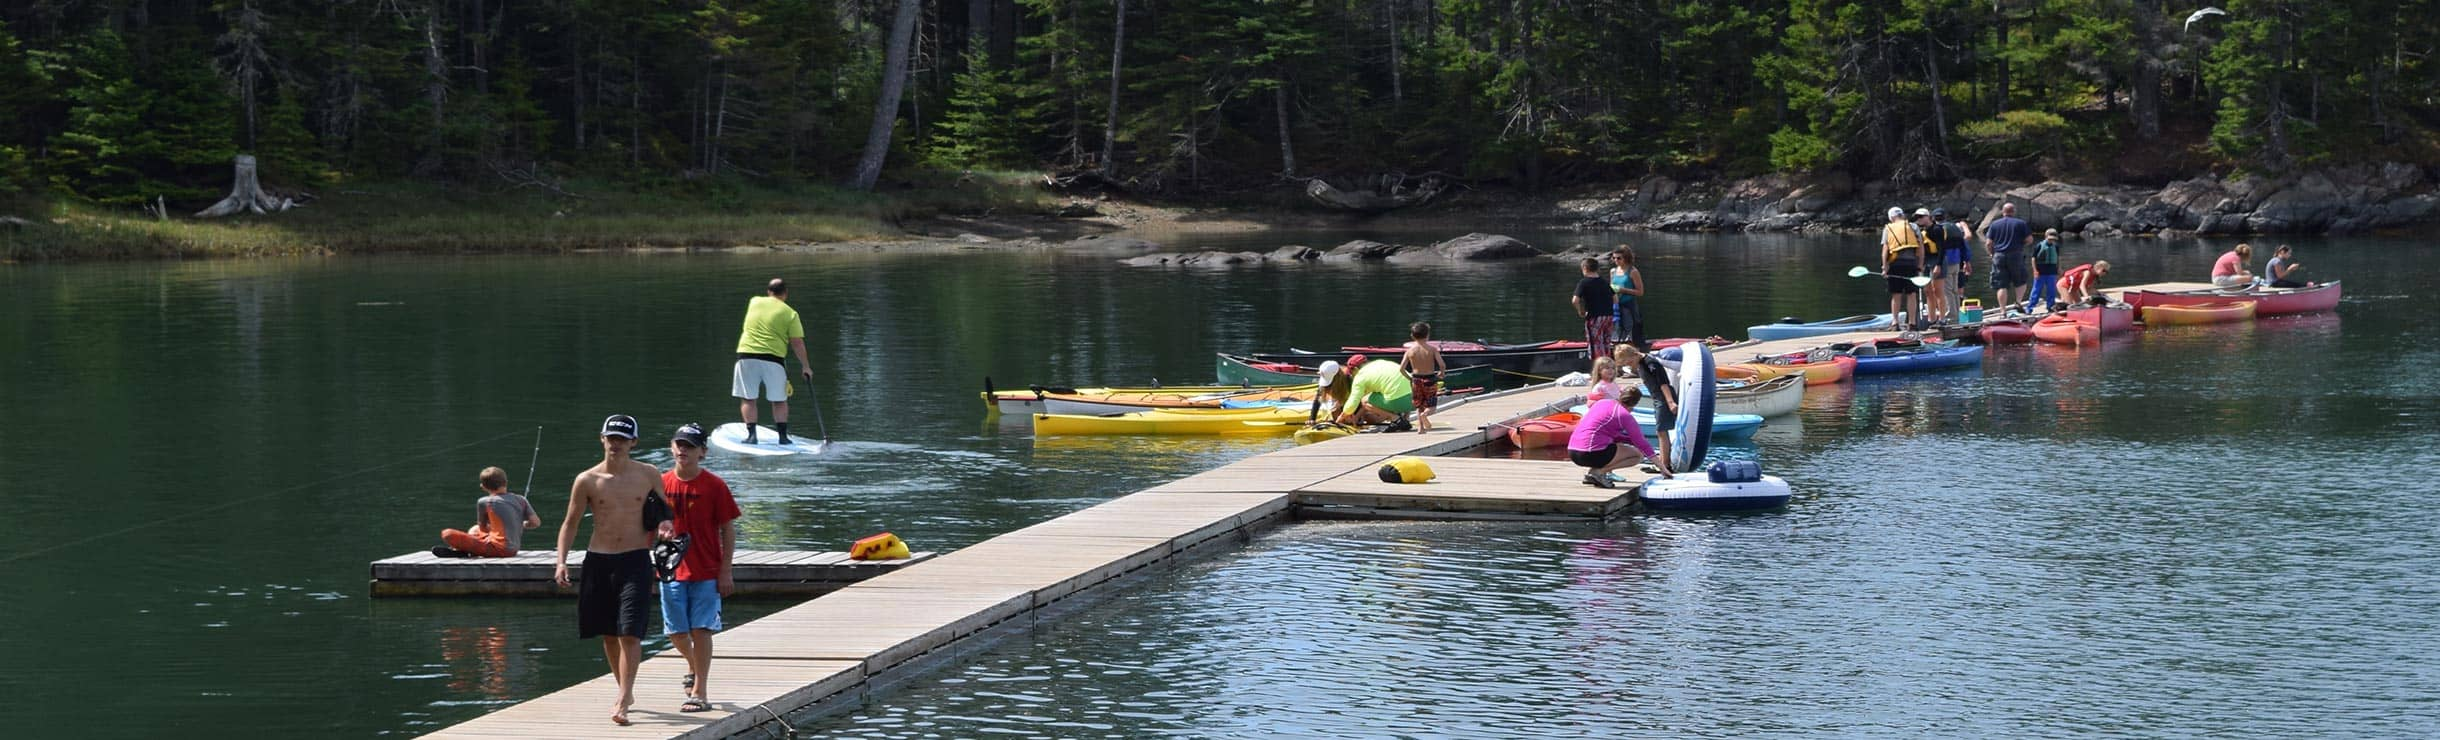 campers on dock with kayaks, inter-tubes and paddleboards